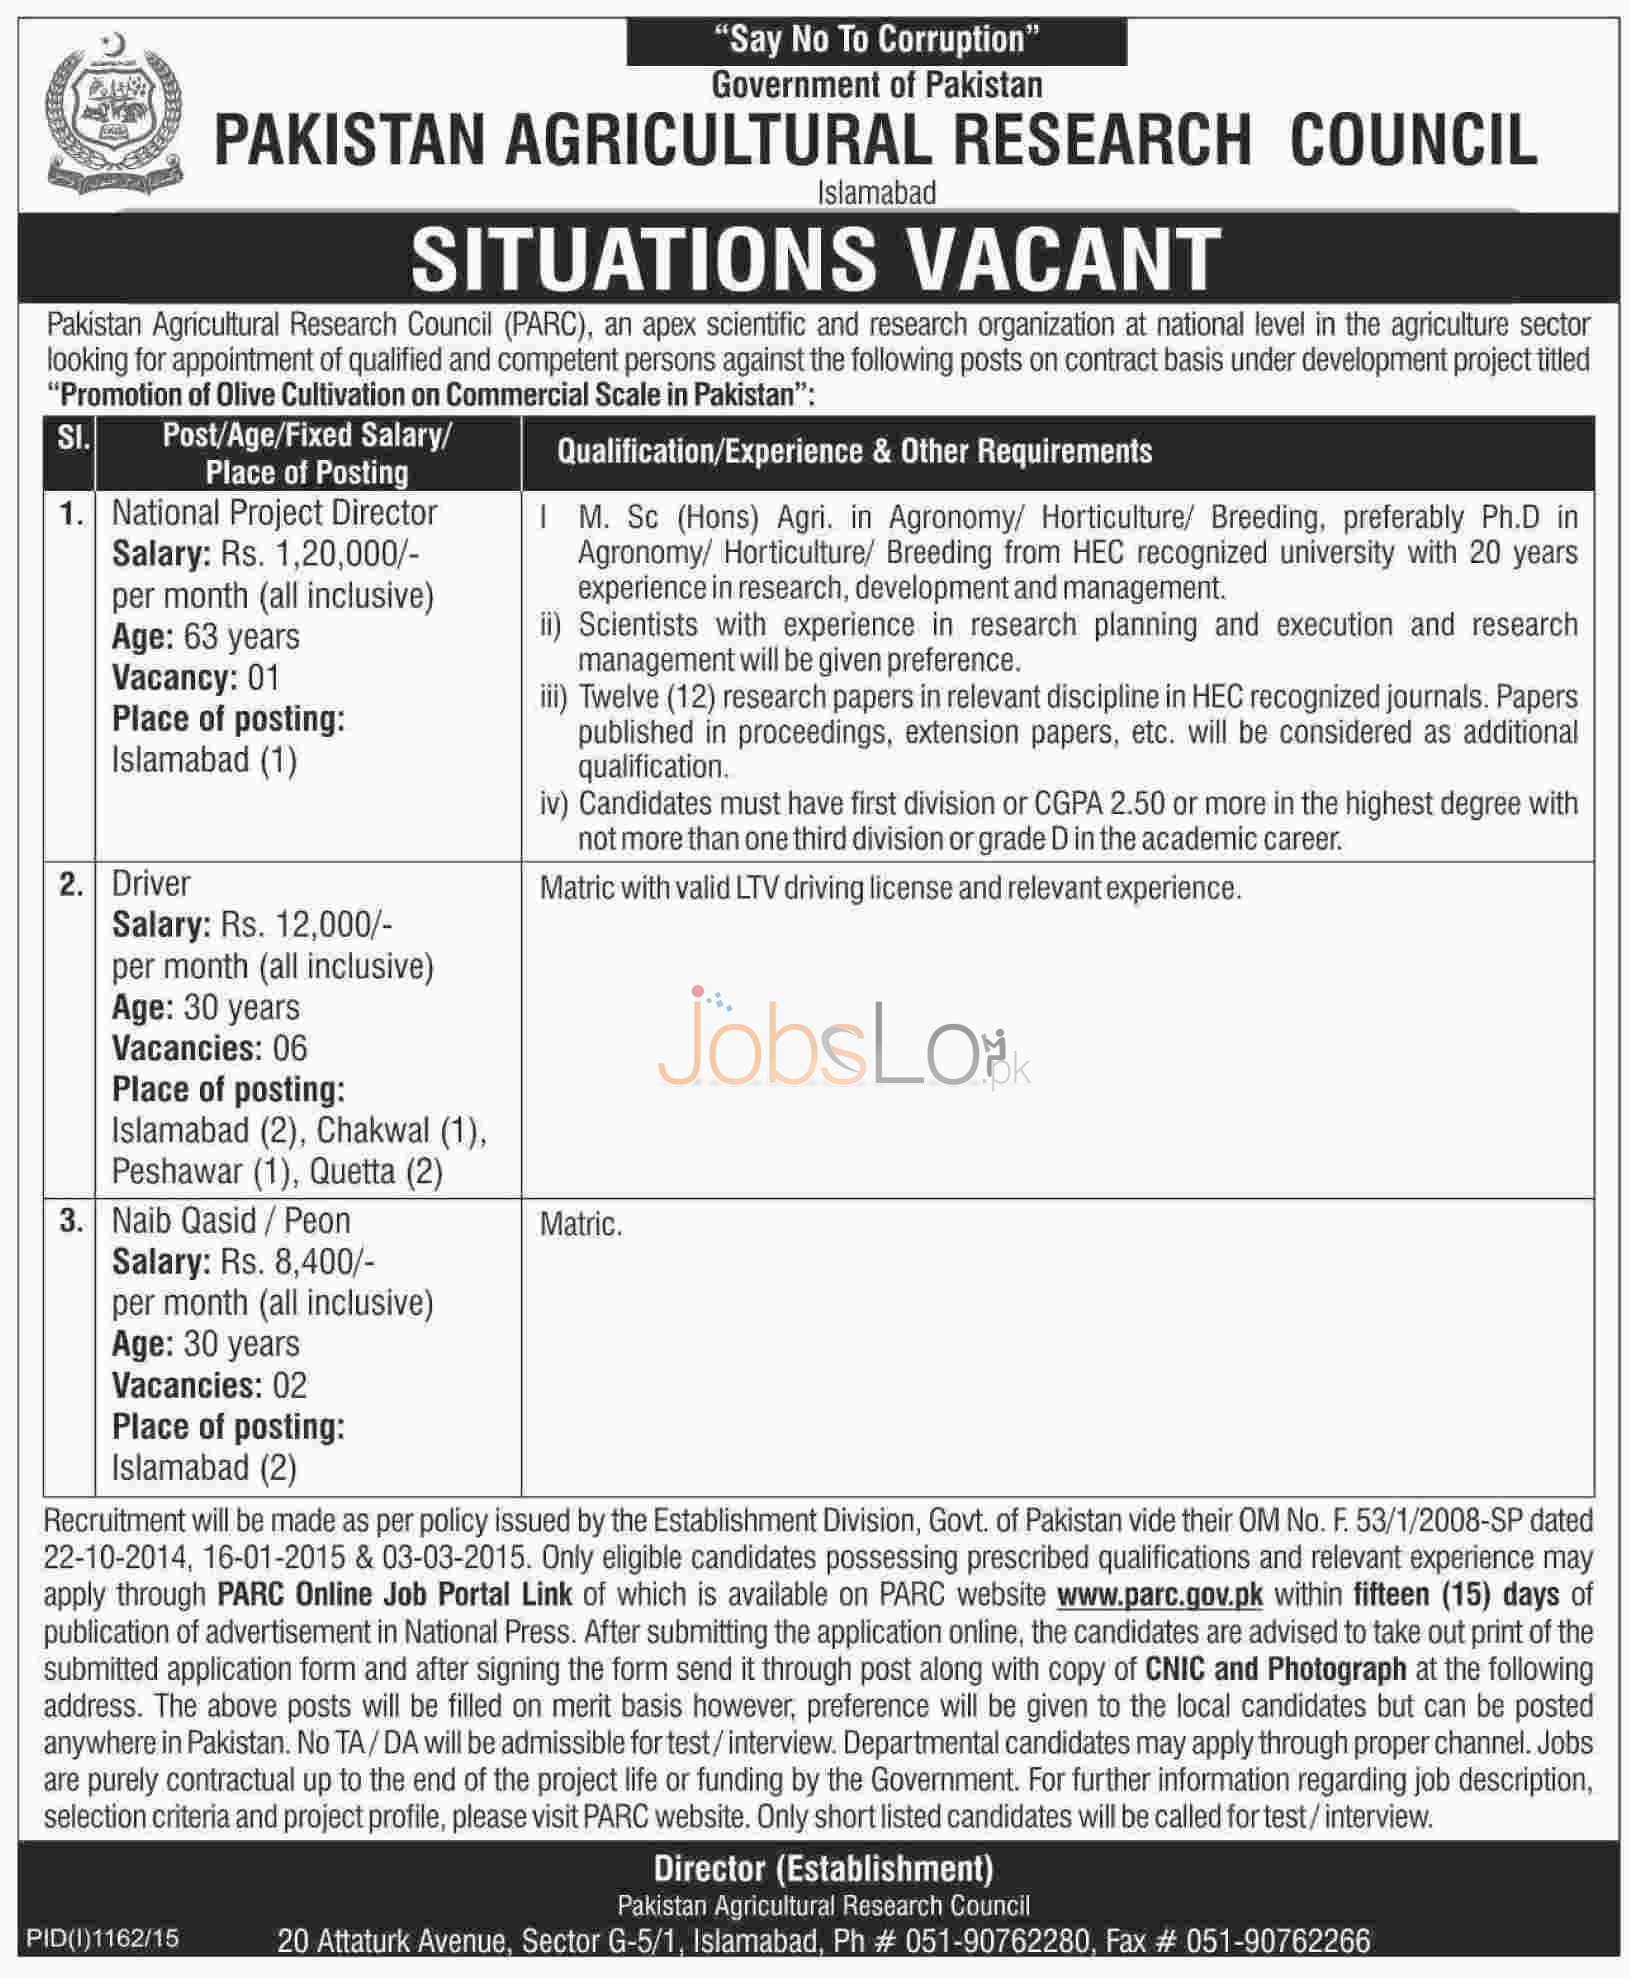 PARC Islamabad Jobs September 2015 National Project Director, Driver & Naib Qasid